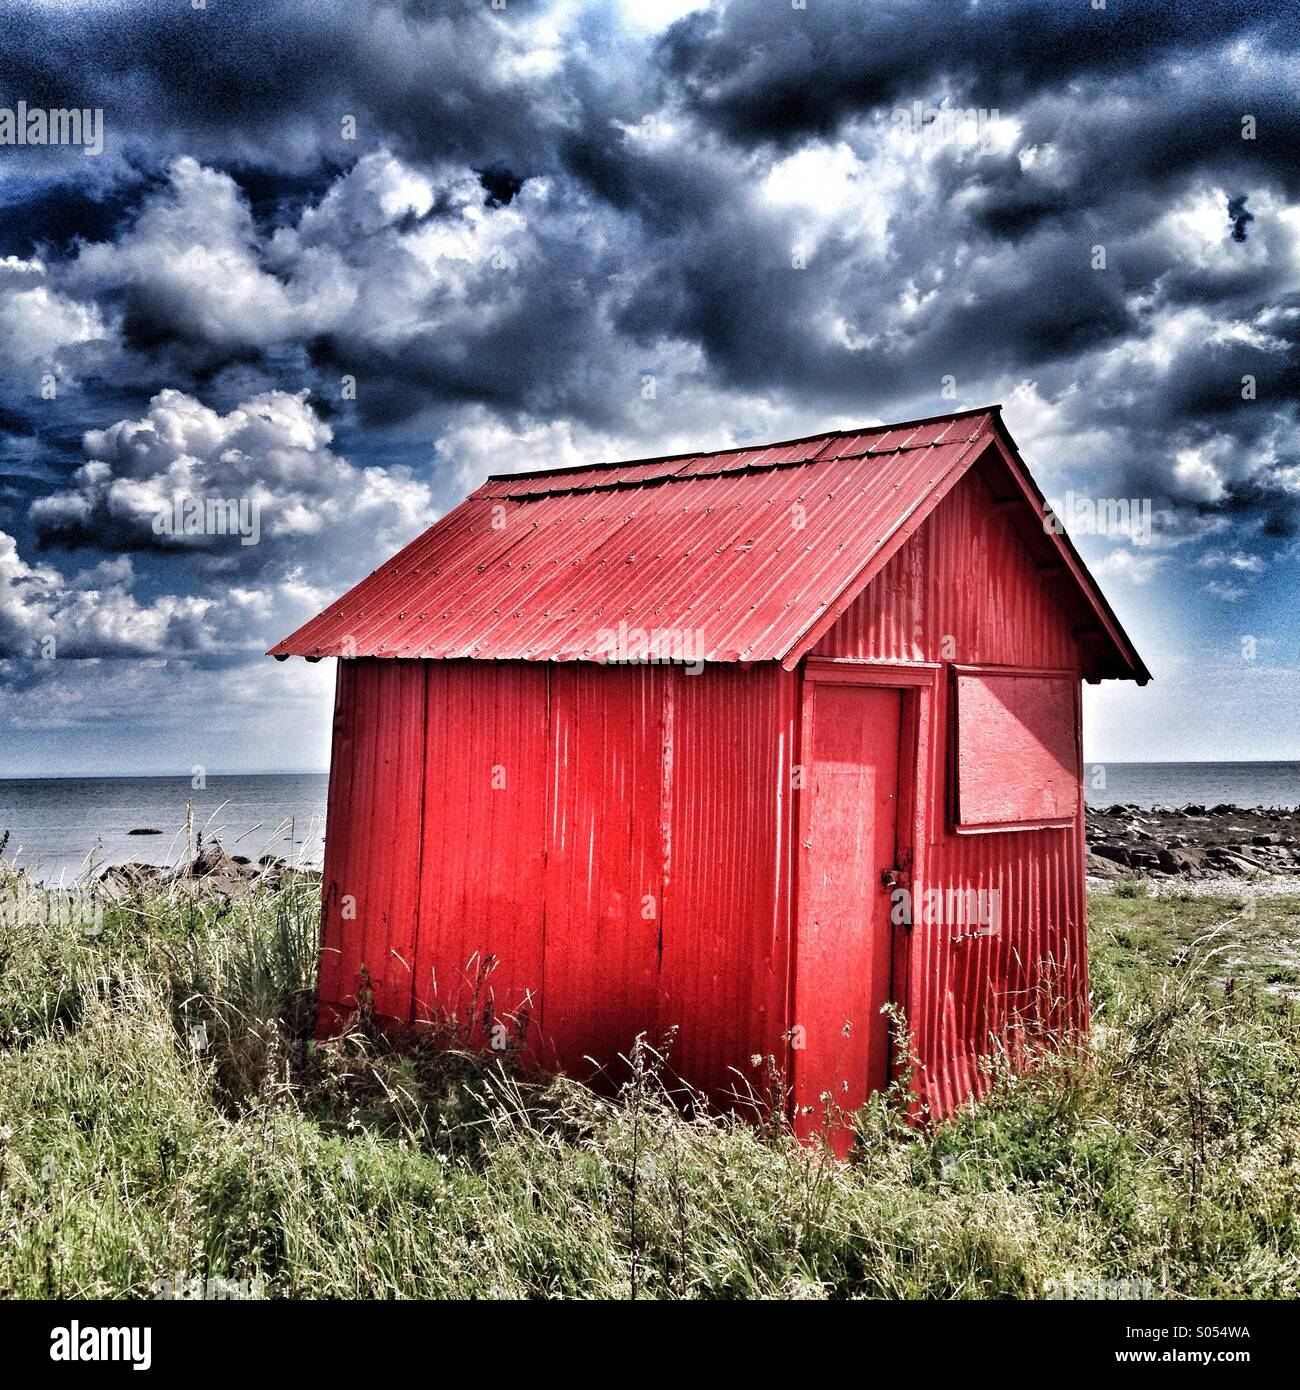 Red Shack - Stock Image